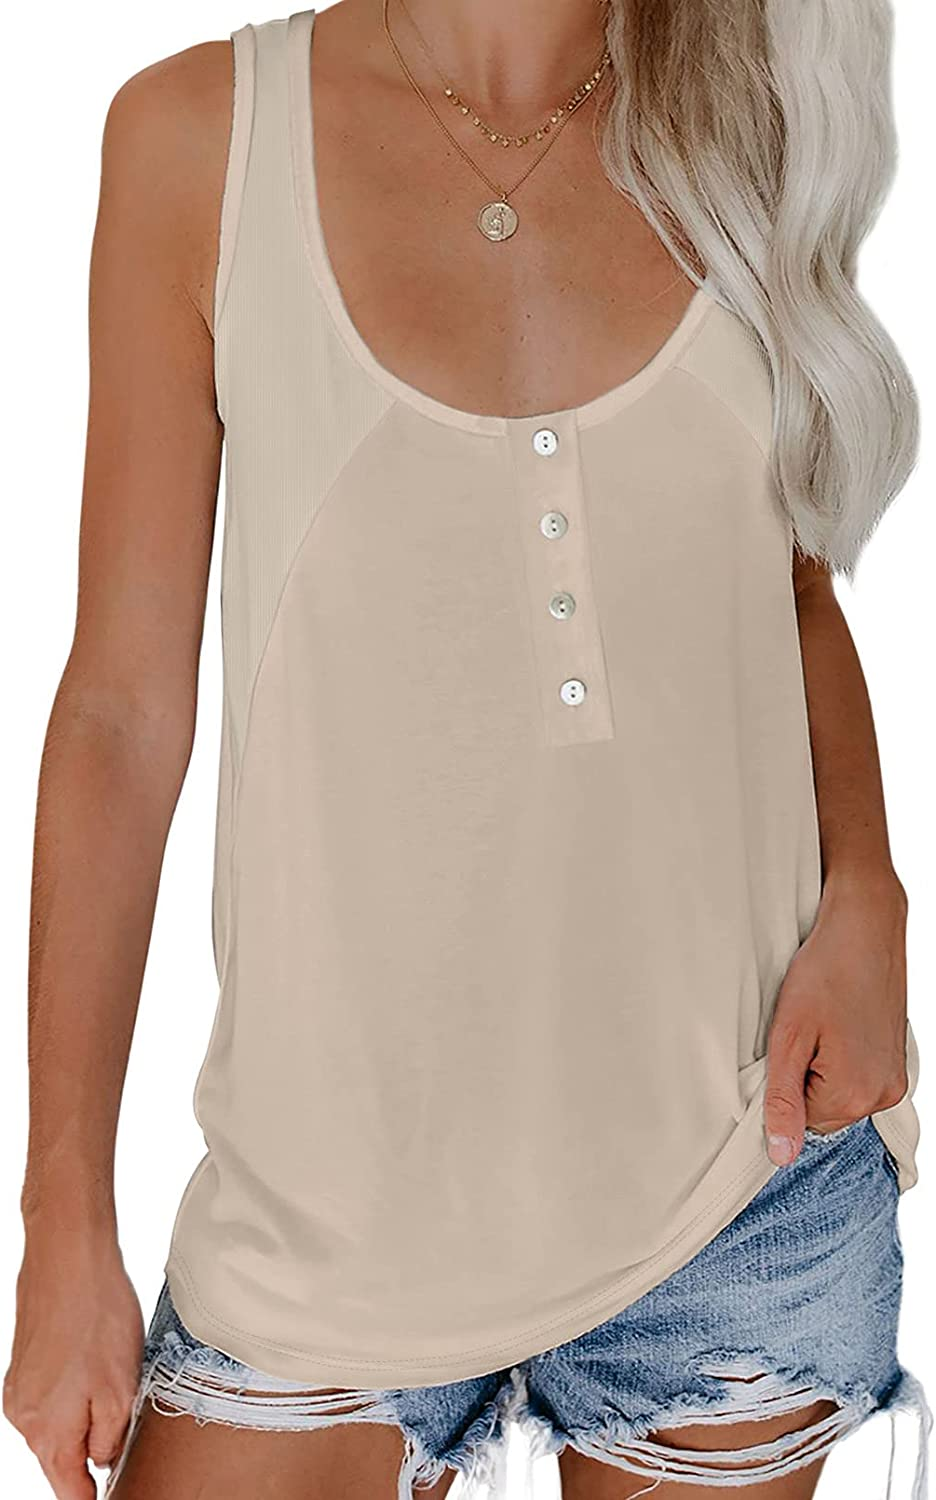 Biucly Women's Summer Tank Tops Casual Button Down Sleeveless Blouses Shirts